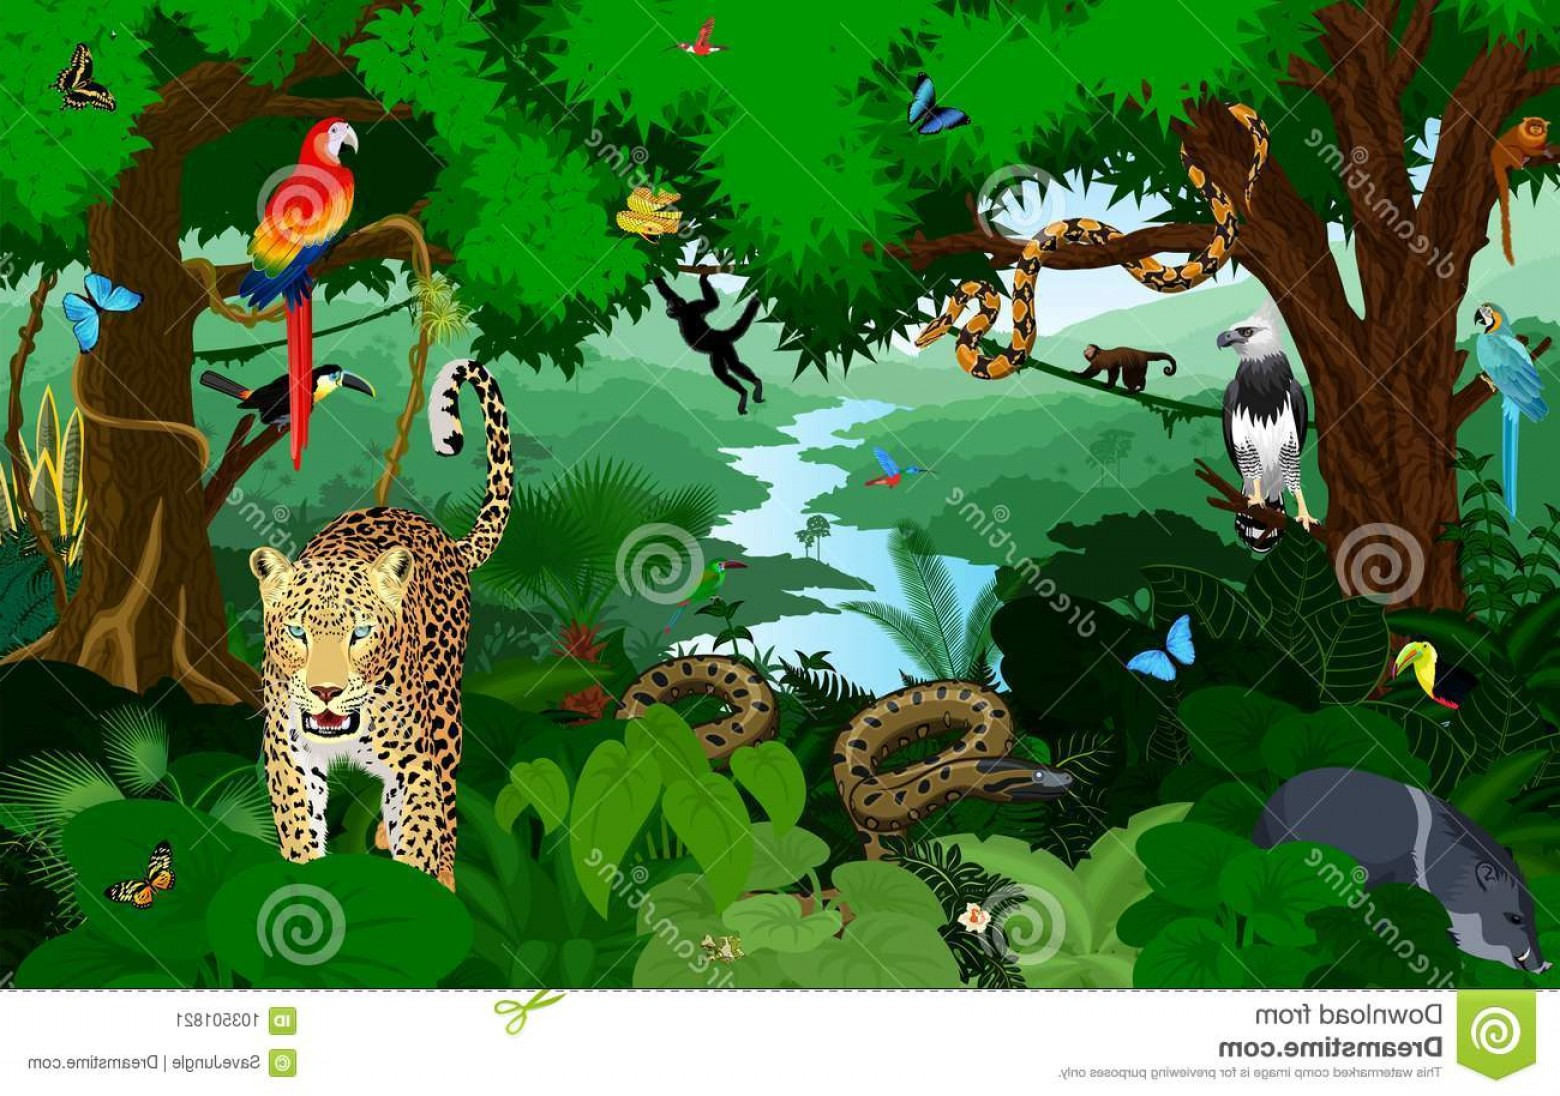 Tropical rainforest jaguar clipart vector black and white stock Rainforest Animals Vector Illustration Green Tropical Forest ... vector black and white stock